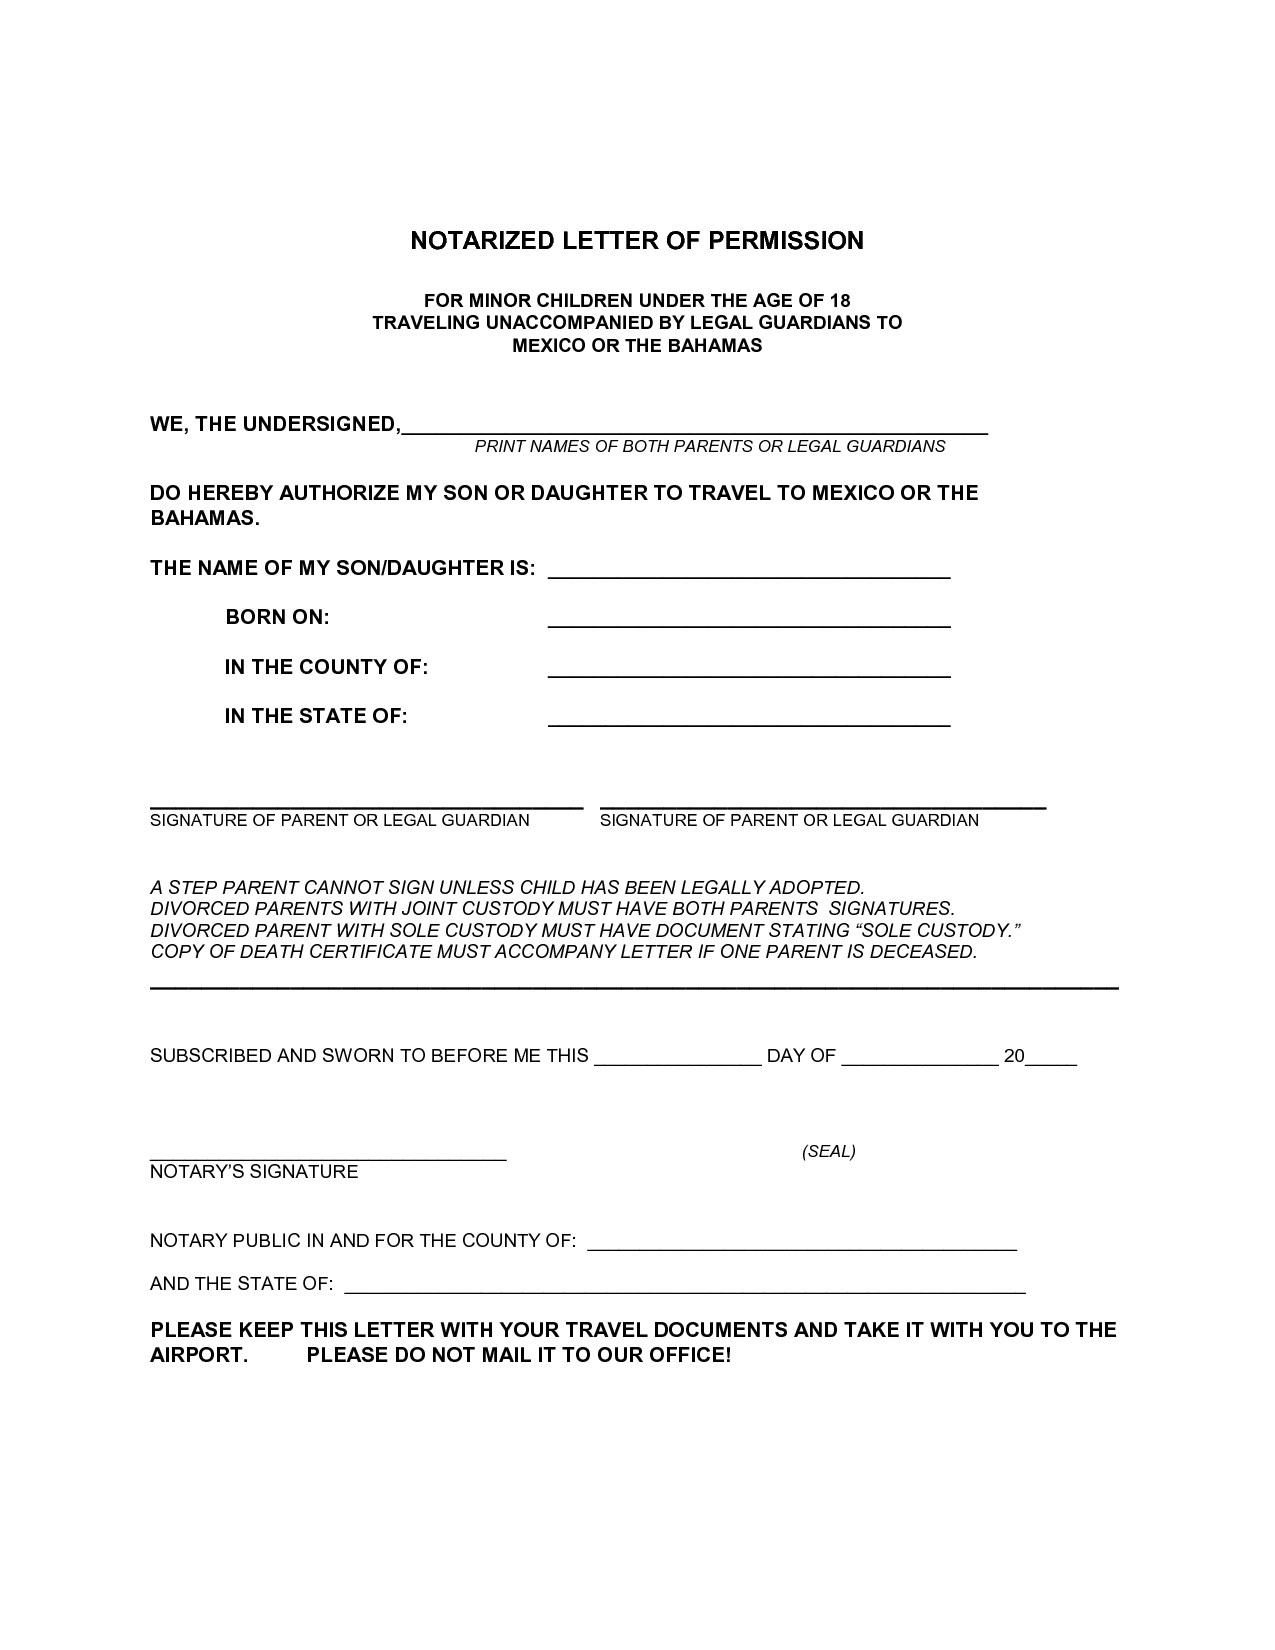 Inspirational Notarized Letter Template For Child Travel Your